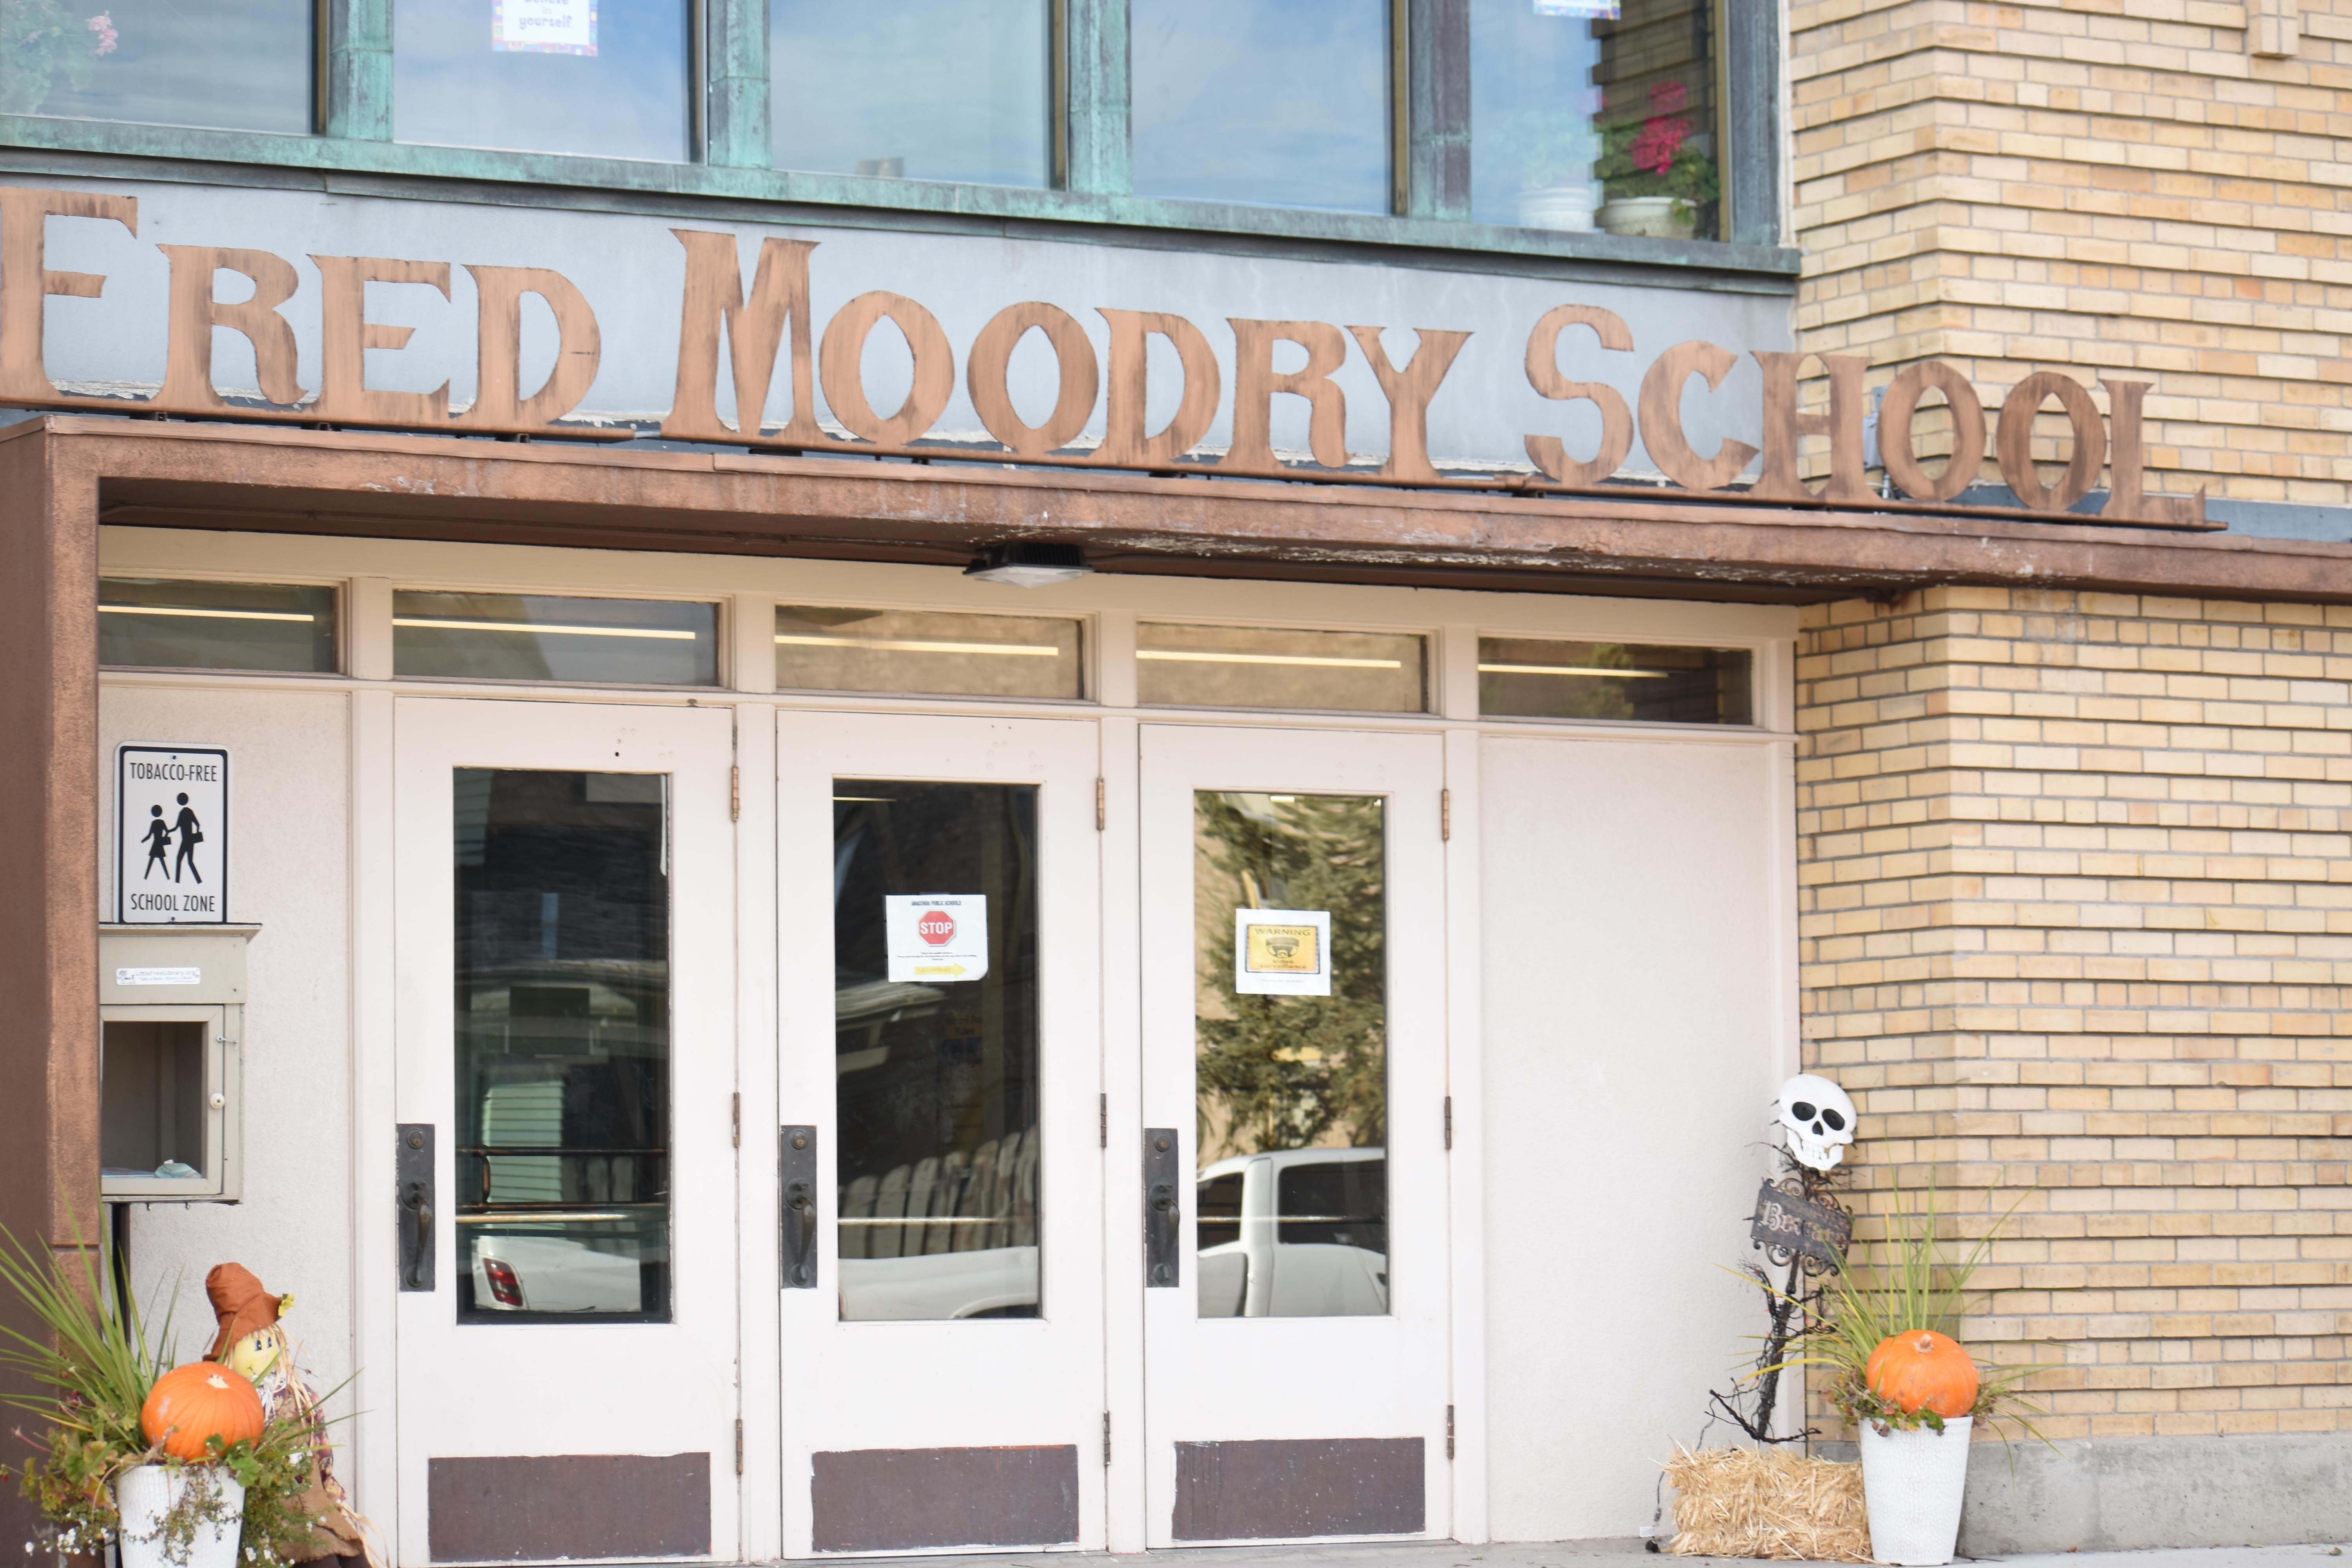 Fred Moodry School